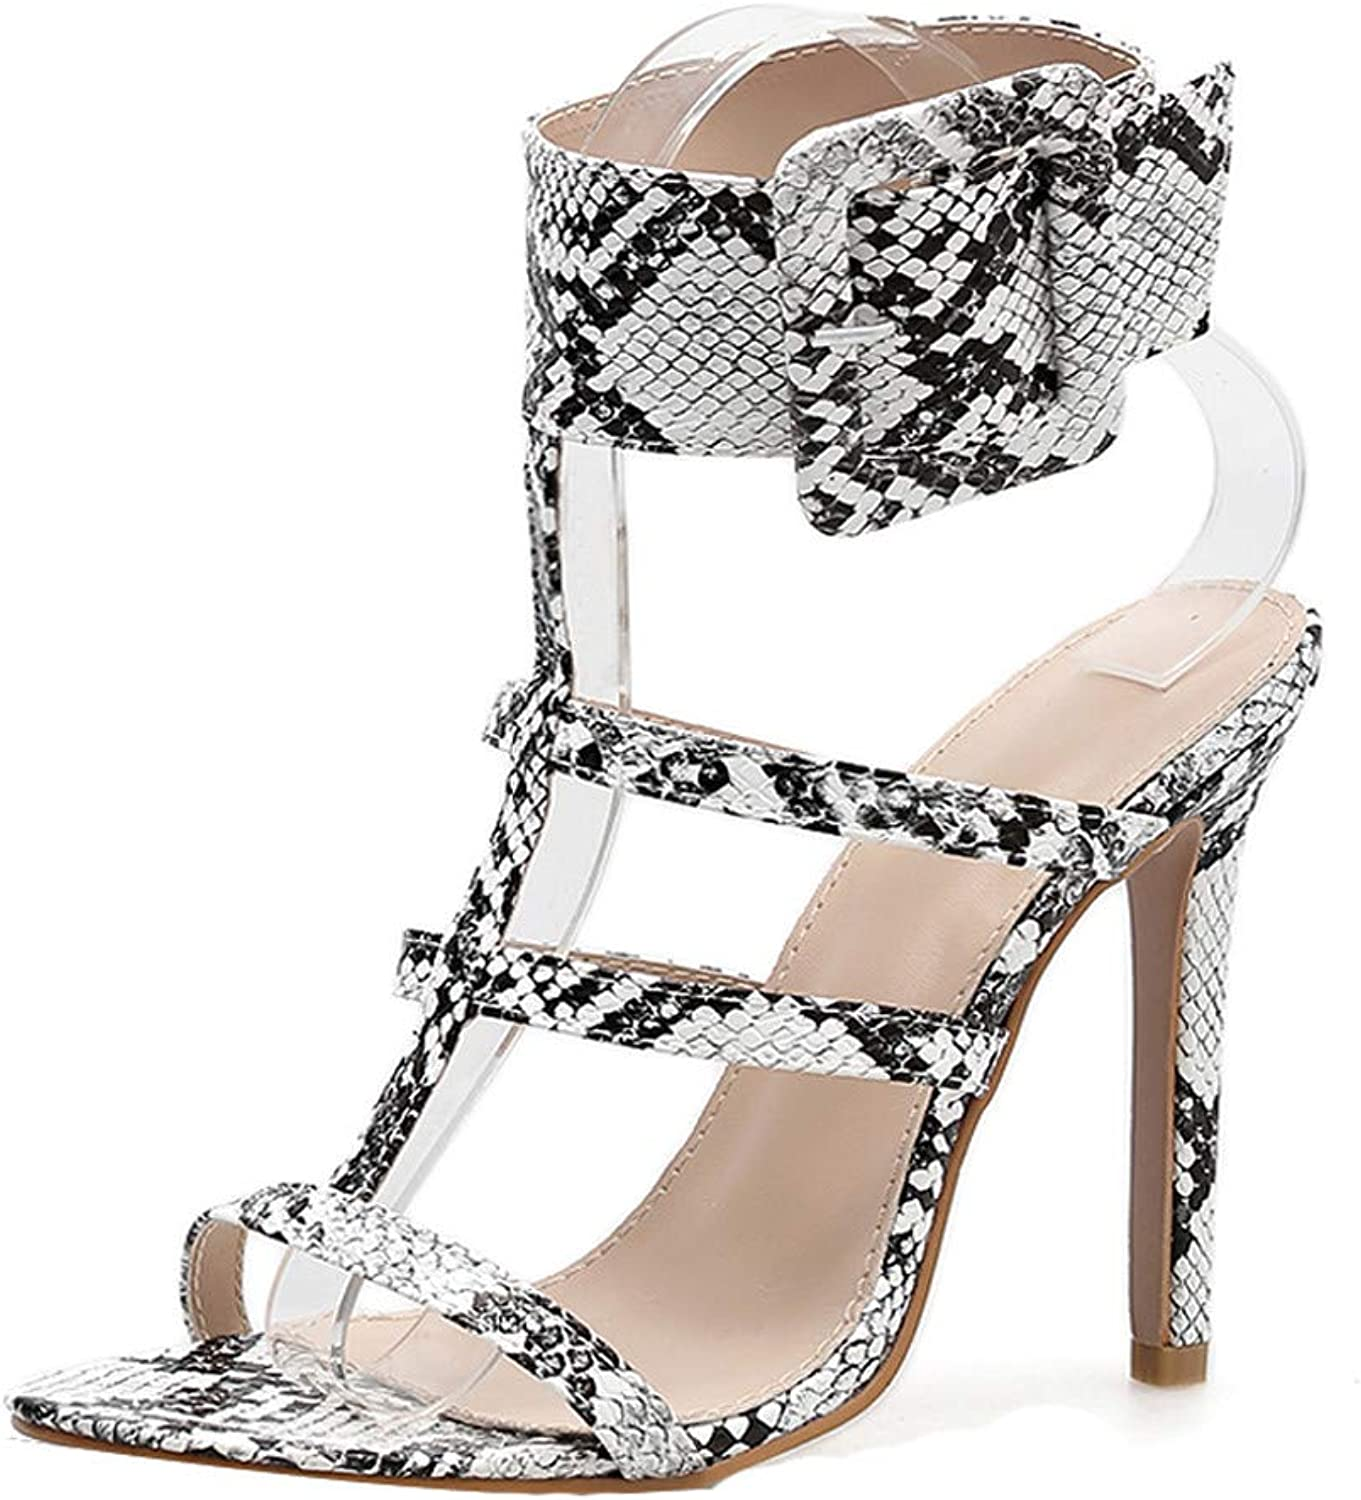 BOLUOYI 2019 High Heels for Women Fashion Women's Snake Sexy Buckle Fish Mouth shoes Non-Slip High Heel Sandals Sandals Womens Heel Wedge